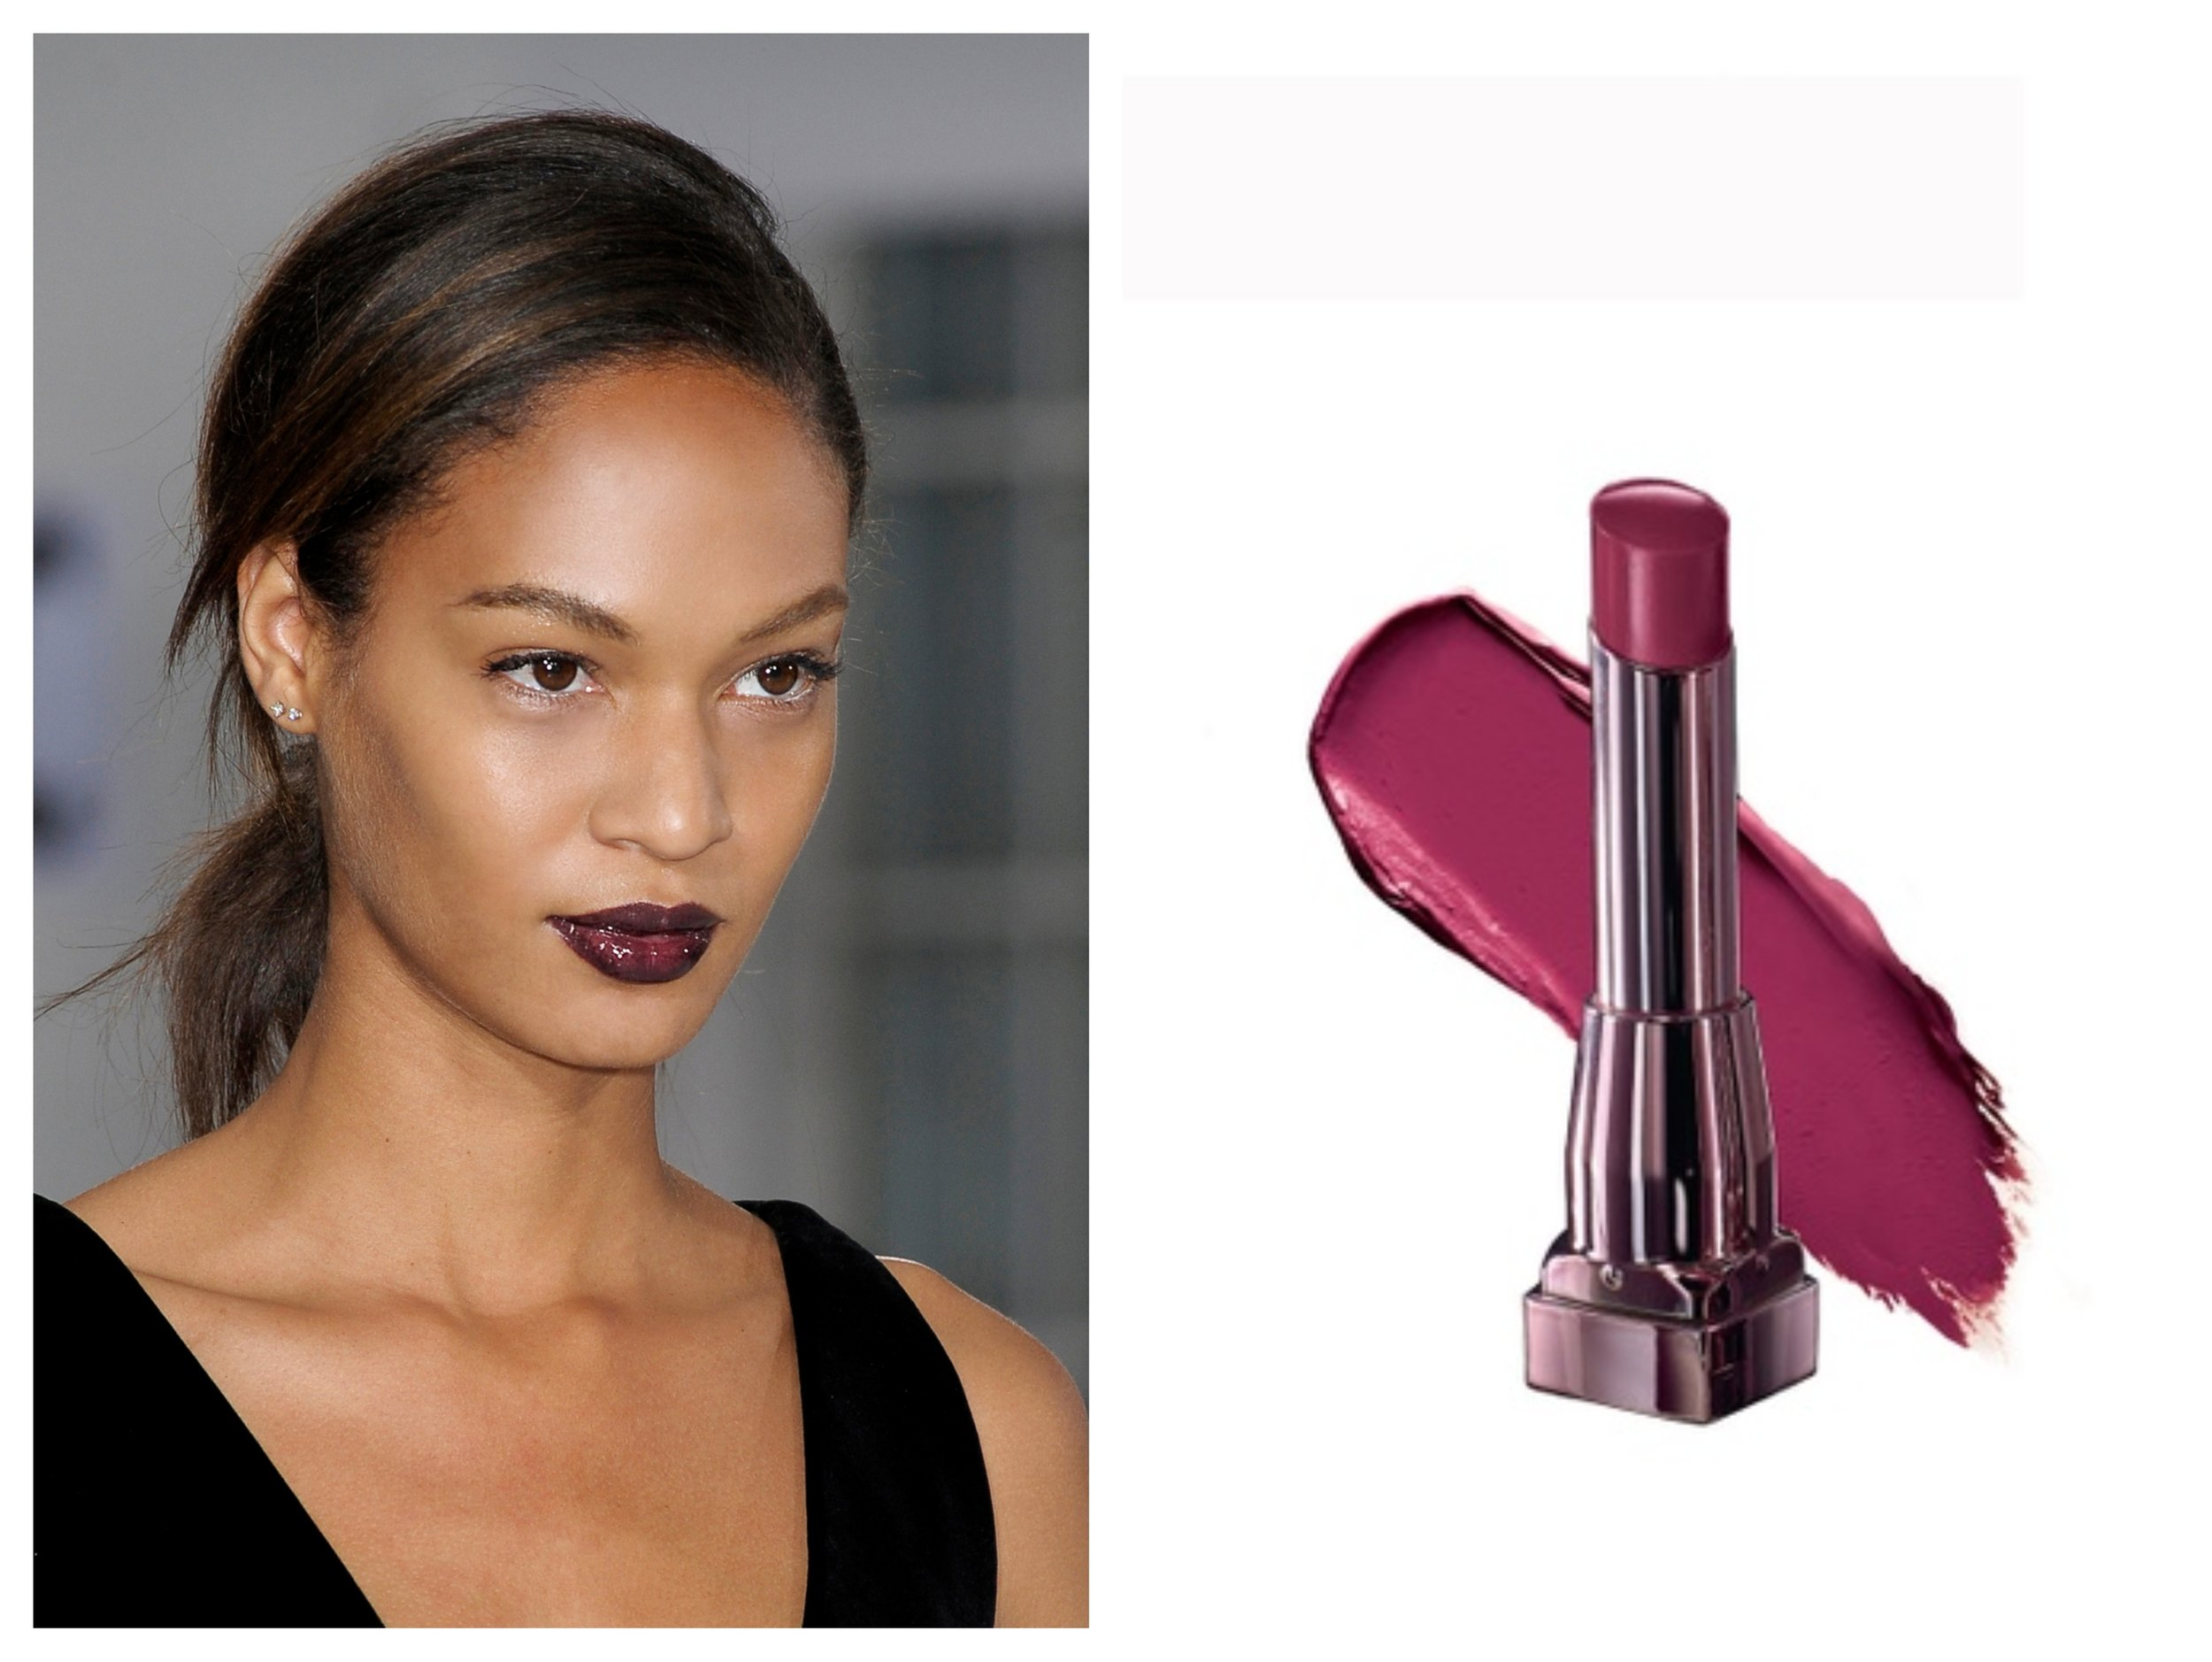 Maybelline Color Sensational Shine Compulsion Lipstick - Mauve Mayhem SPK21